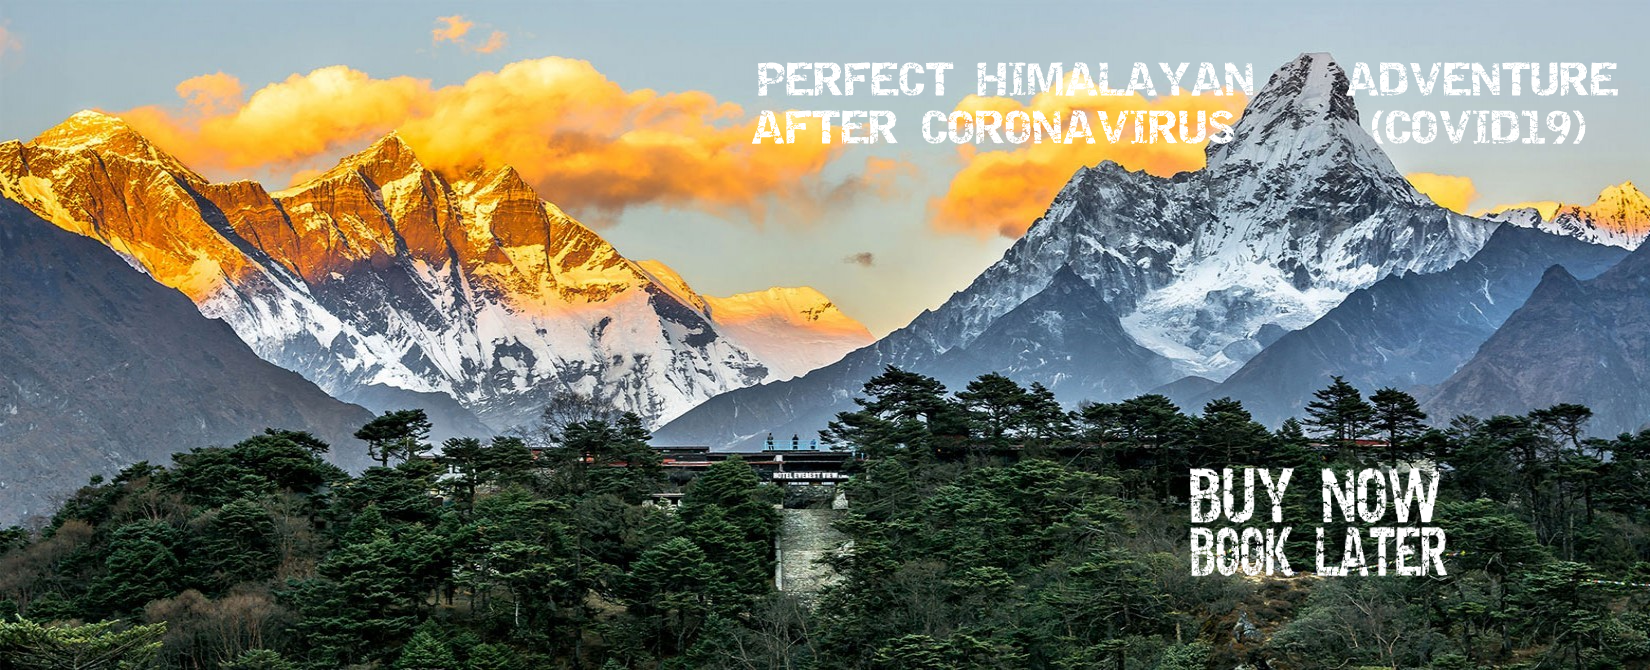 Embark on a Journey to Nepal After Coronavirus